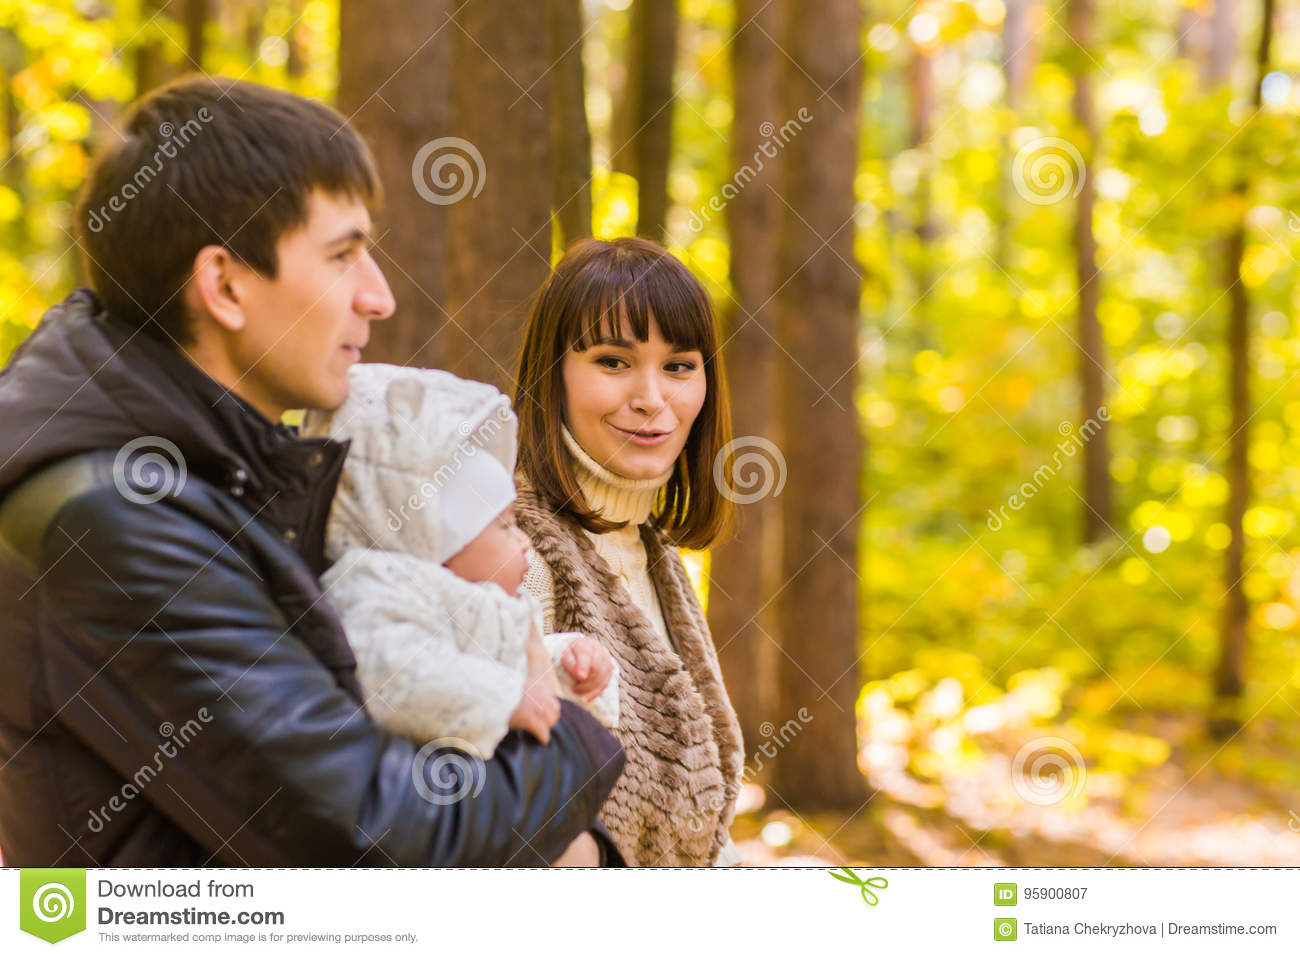 Happy young family in the autumn park outdoors on a sunny day. Mother, father and their little baby boy are walking in